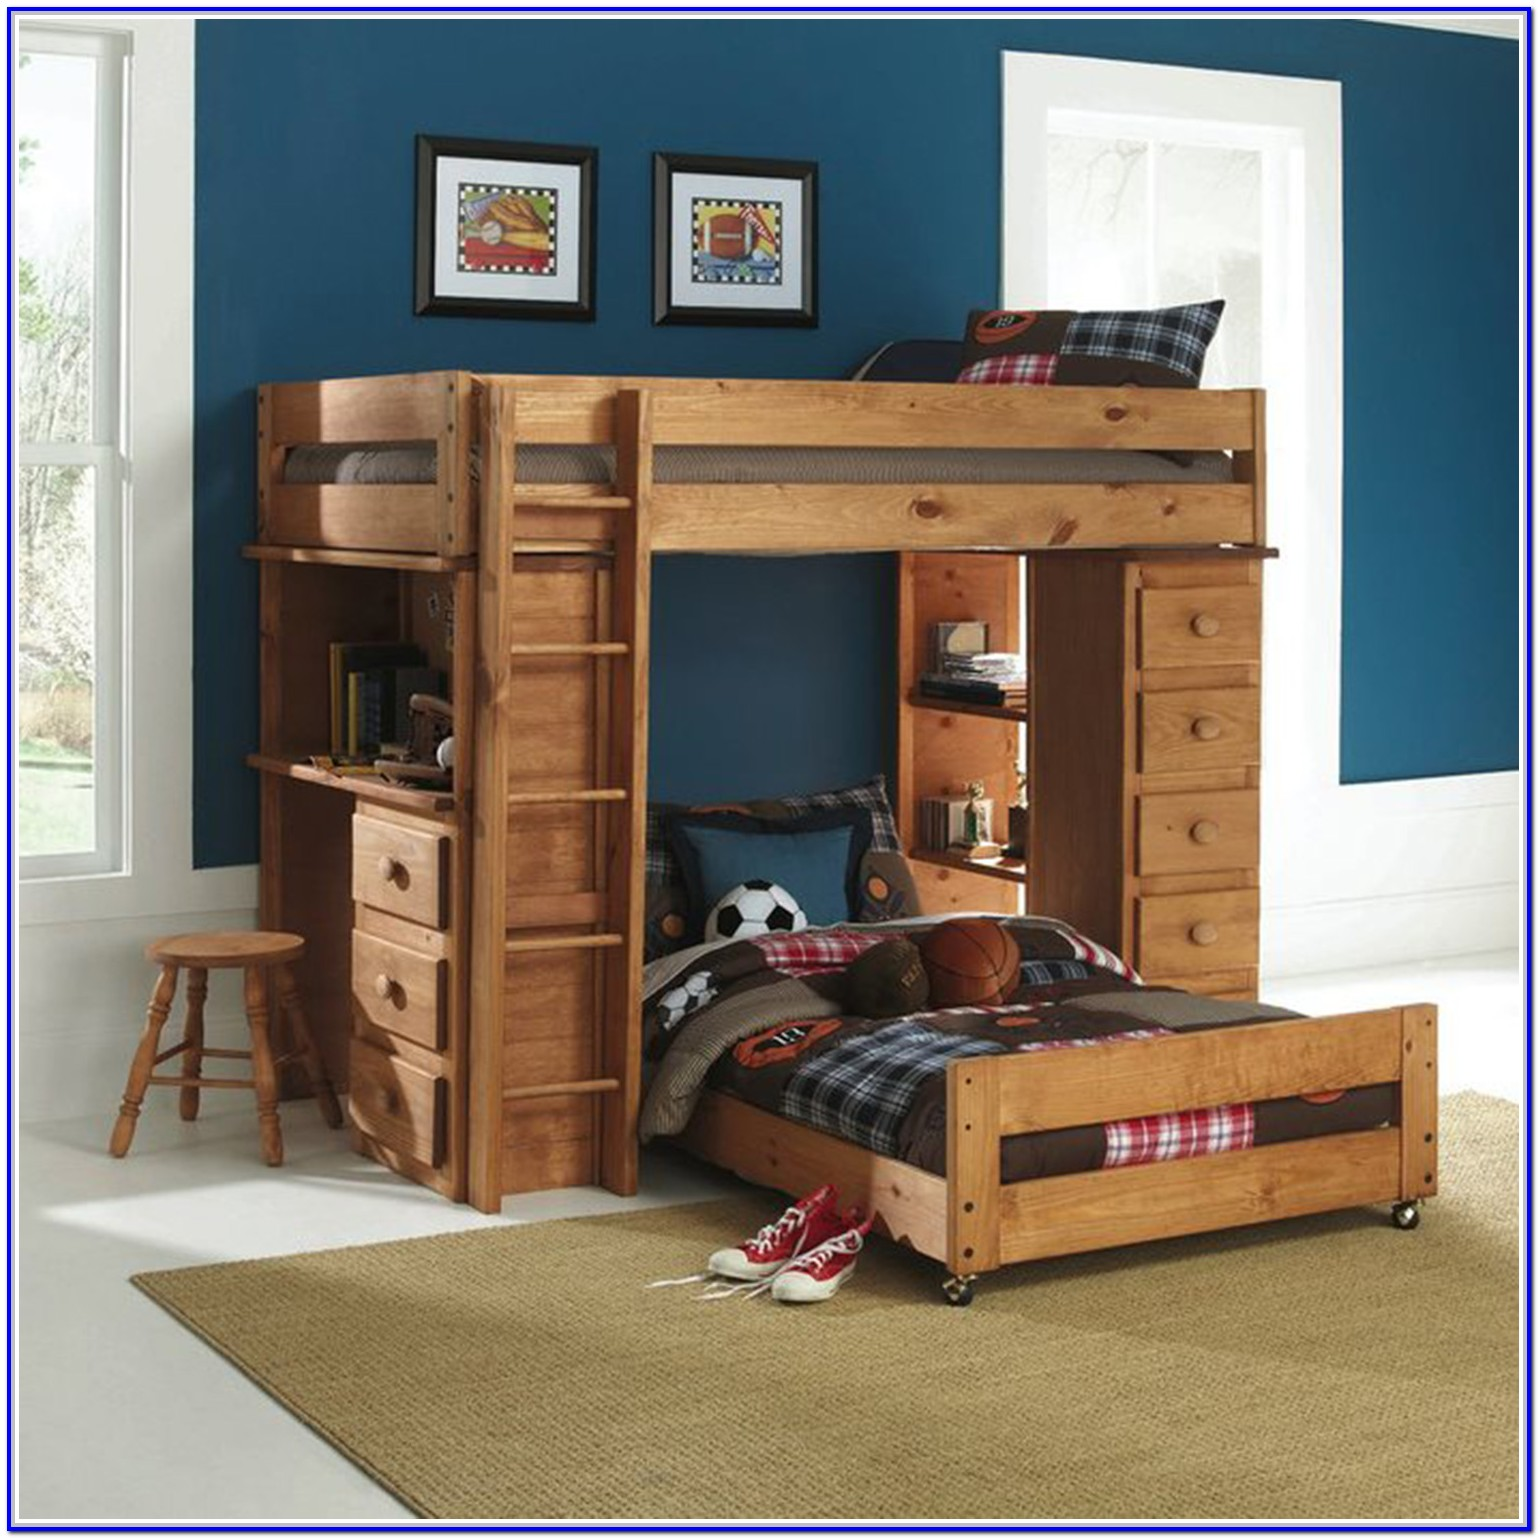 Ashley Furniture Loft Bed With Desk